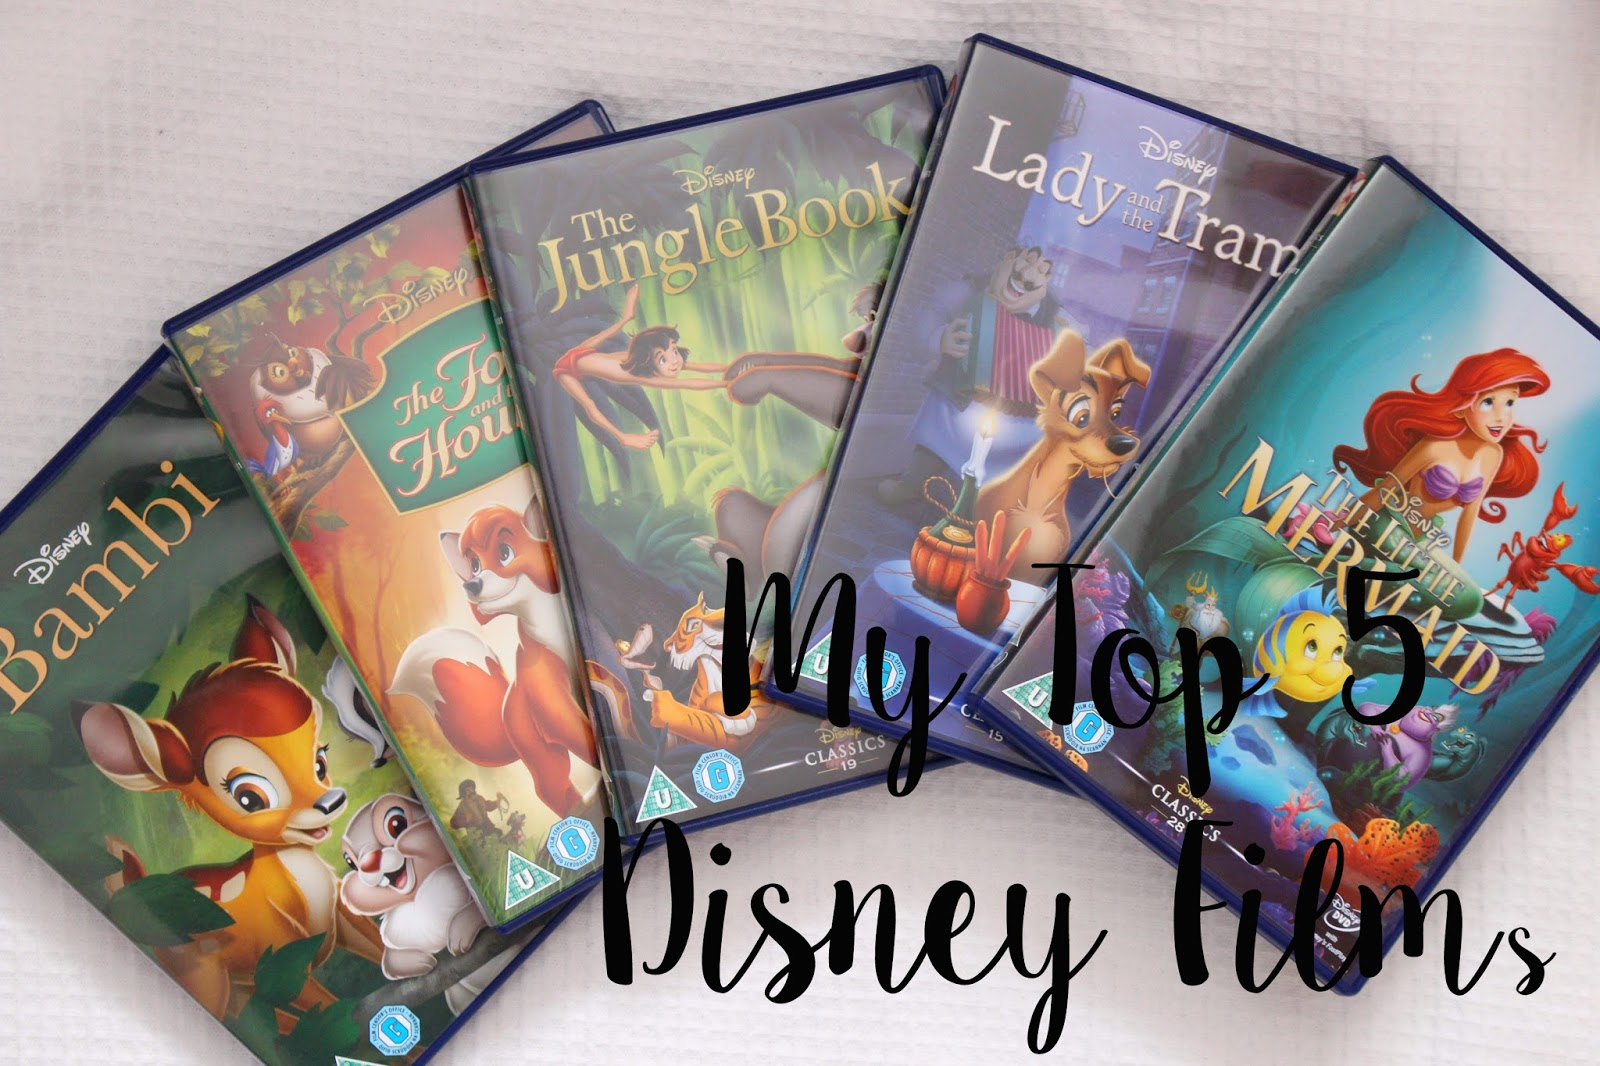 My Top 5 Disney Films The little mermaid bambi jungle book fox and the hound lady and the tramp reviews blog lifestyle UK